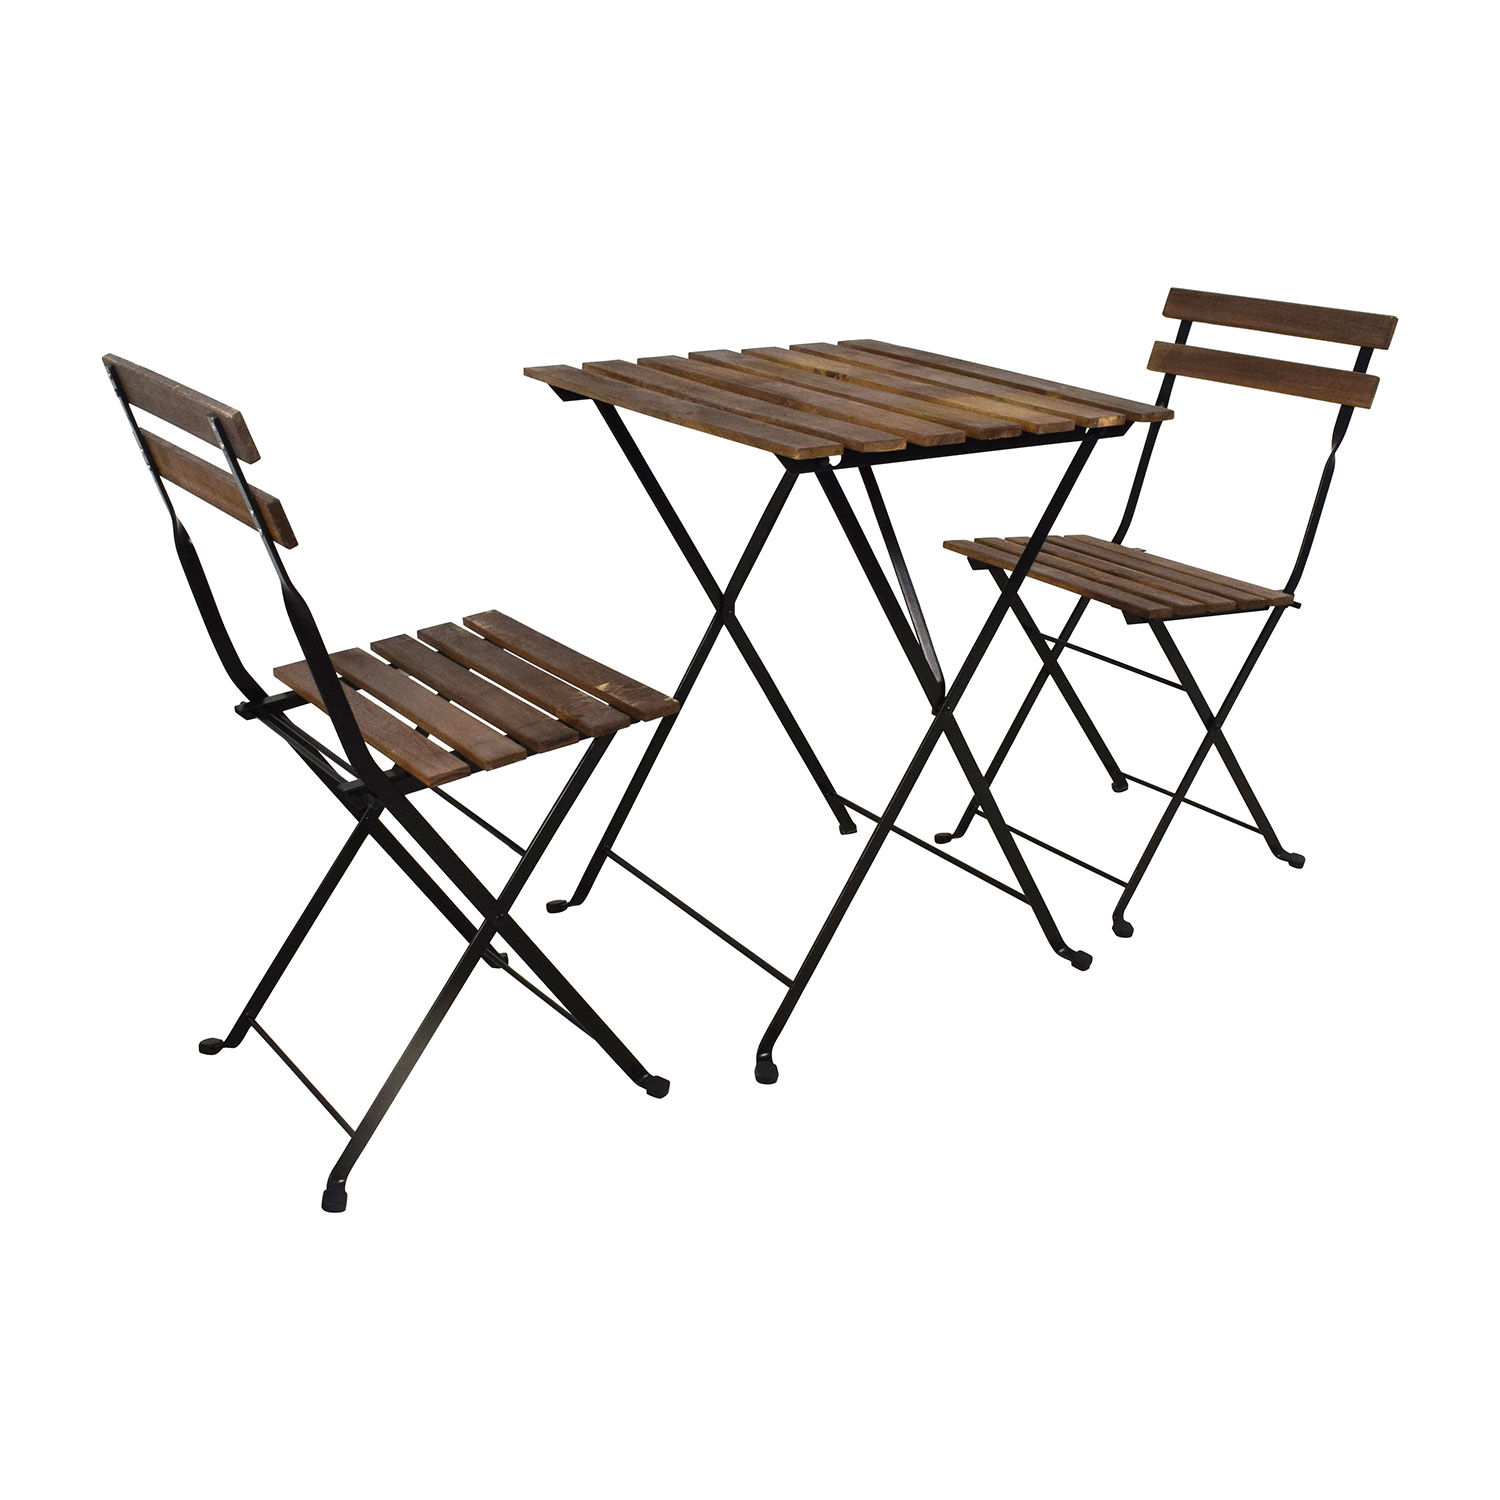 Free Tables And Chairs: IKEA IKEA Tarno Folding Table And Two Folding